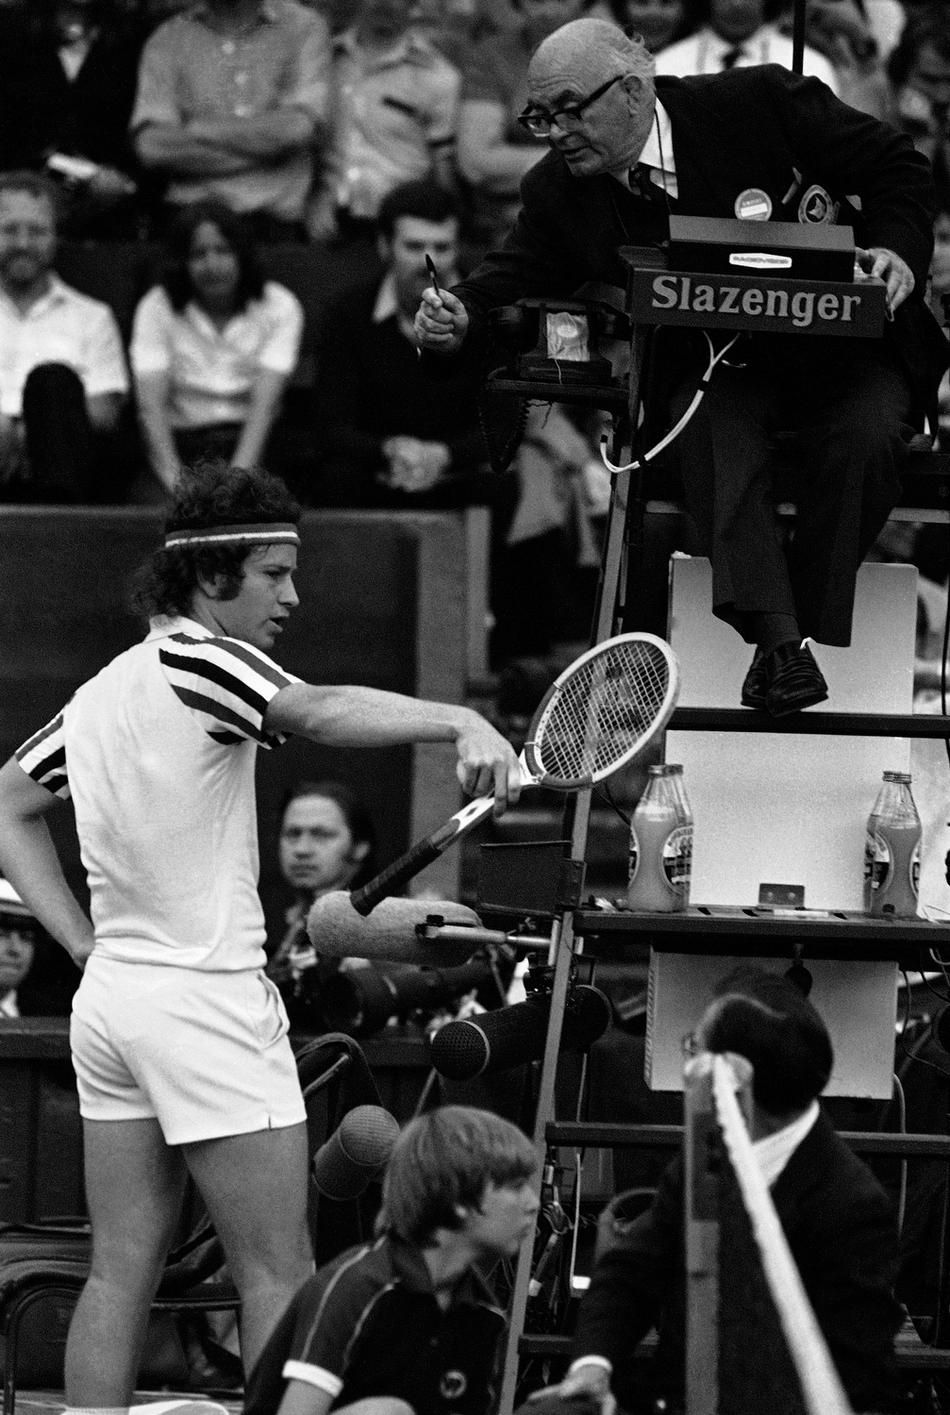 John McEnroe argues a line call with the umpire, during his Wimbledon Men's Singles Semifinal, Friday, July 4, 1980 against Jimmy Connors. McEnroe claimed that he aced Connors, but the umpire-who's decision was upheld - disagreed. (PA Photo)